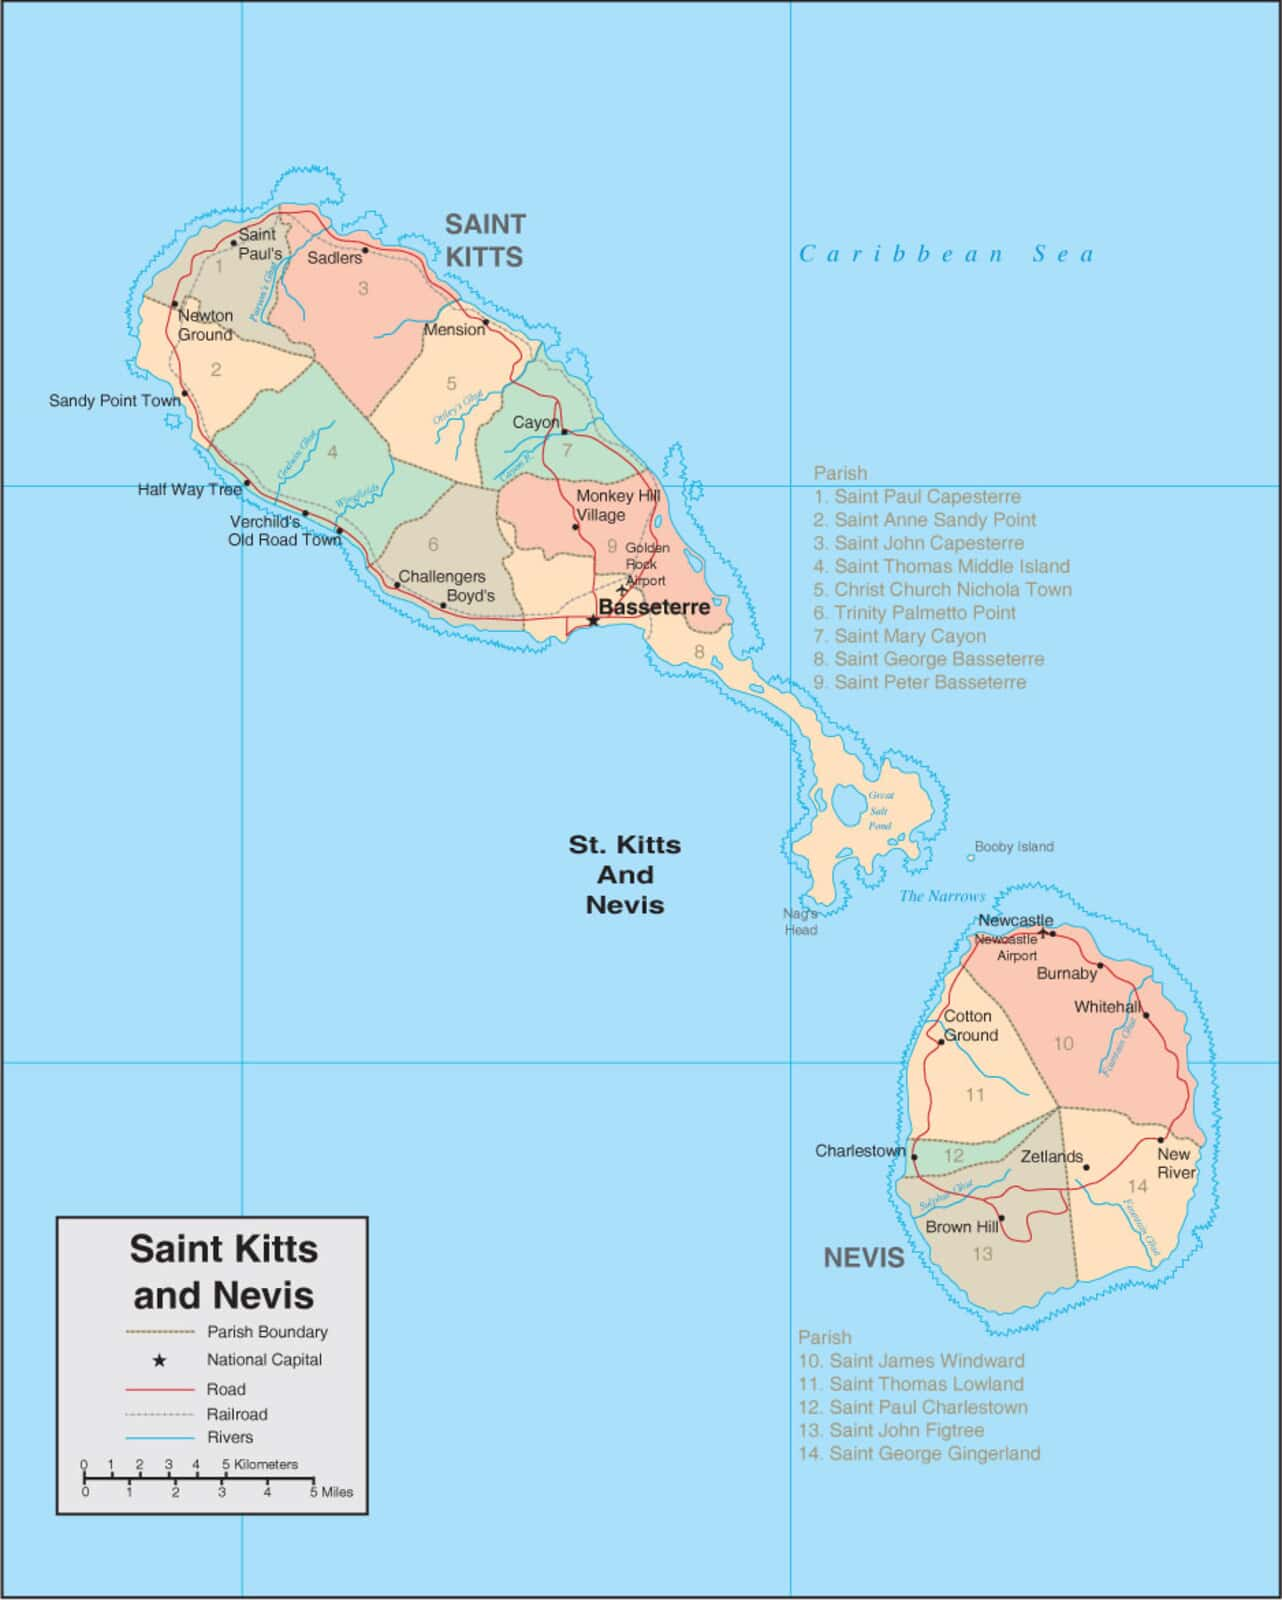 St Kitts Map - Detailed Map of St Kitts and Nevis on ukraine map, senegal map, albania map, montenegro map, redonda map, slovenia map, anglosphere map, svalbard and jan mayen map, caribbean map, yisrael map, monaco map, tokelau map, timor-leste map, lesotho map, virgin islands map, nevis island map, south georgia and the south sandwich islands map, serbia map, nevis on world map, singapore map,